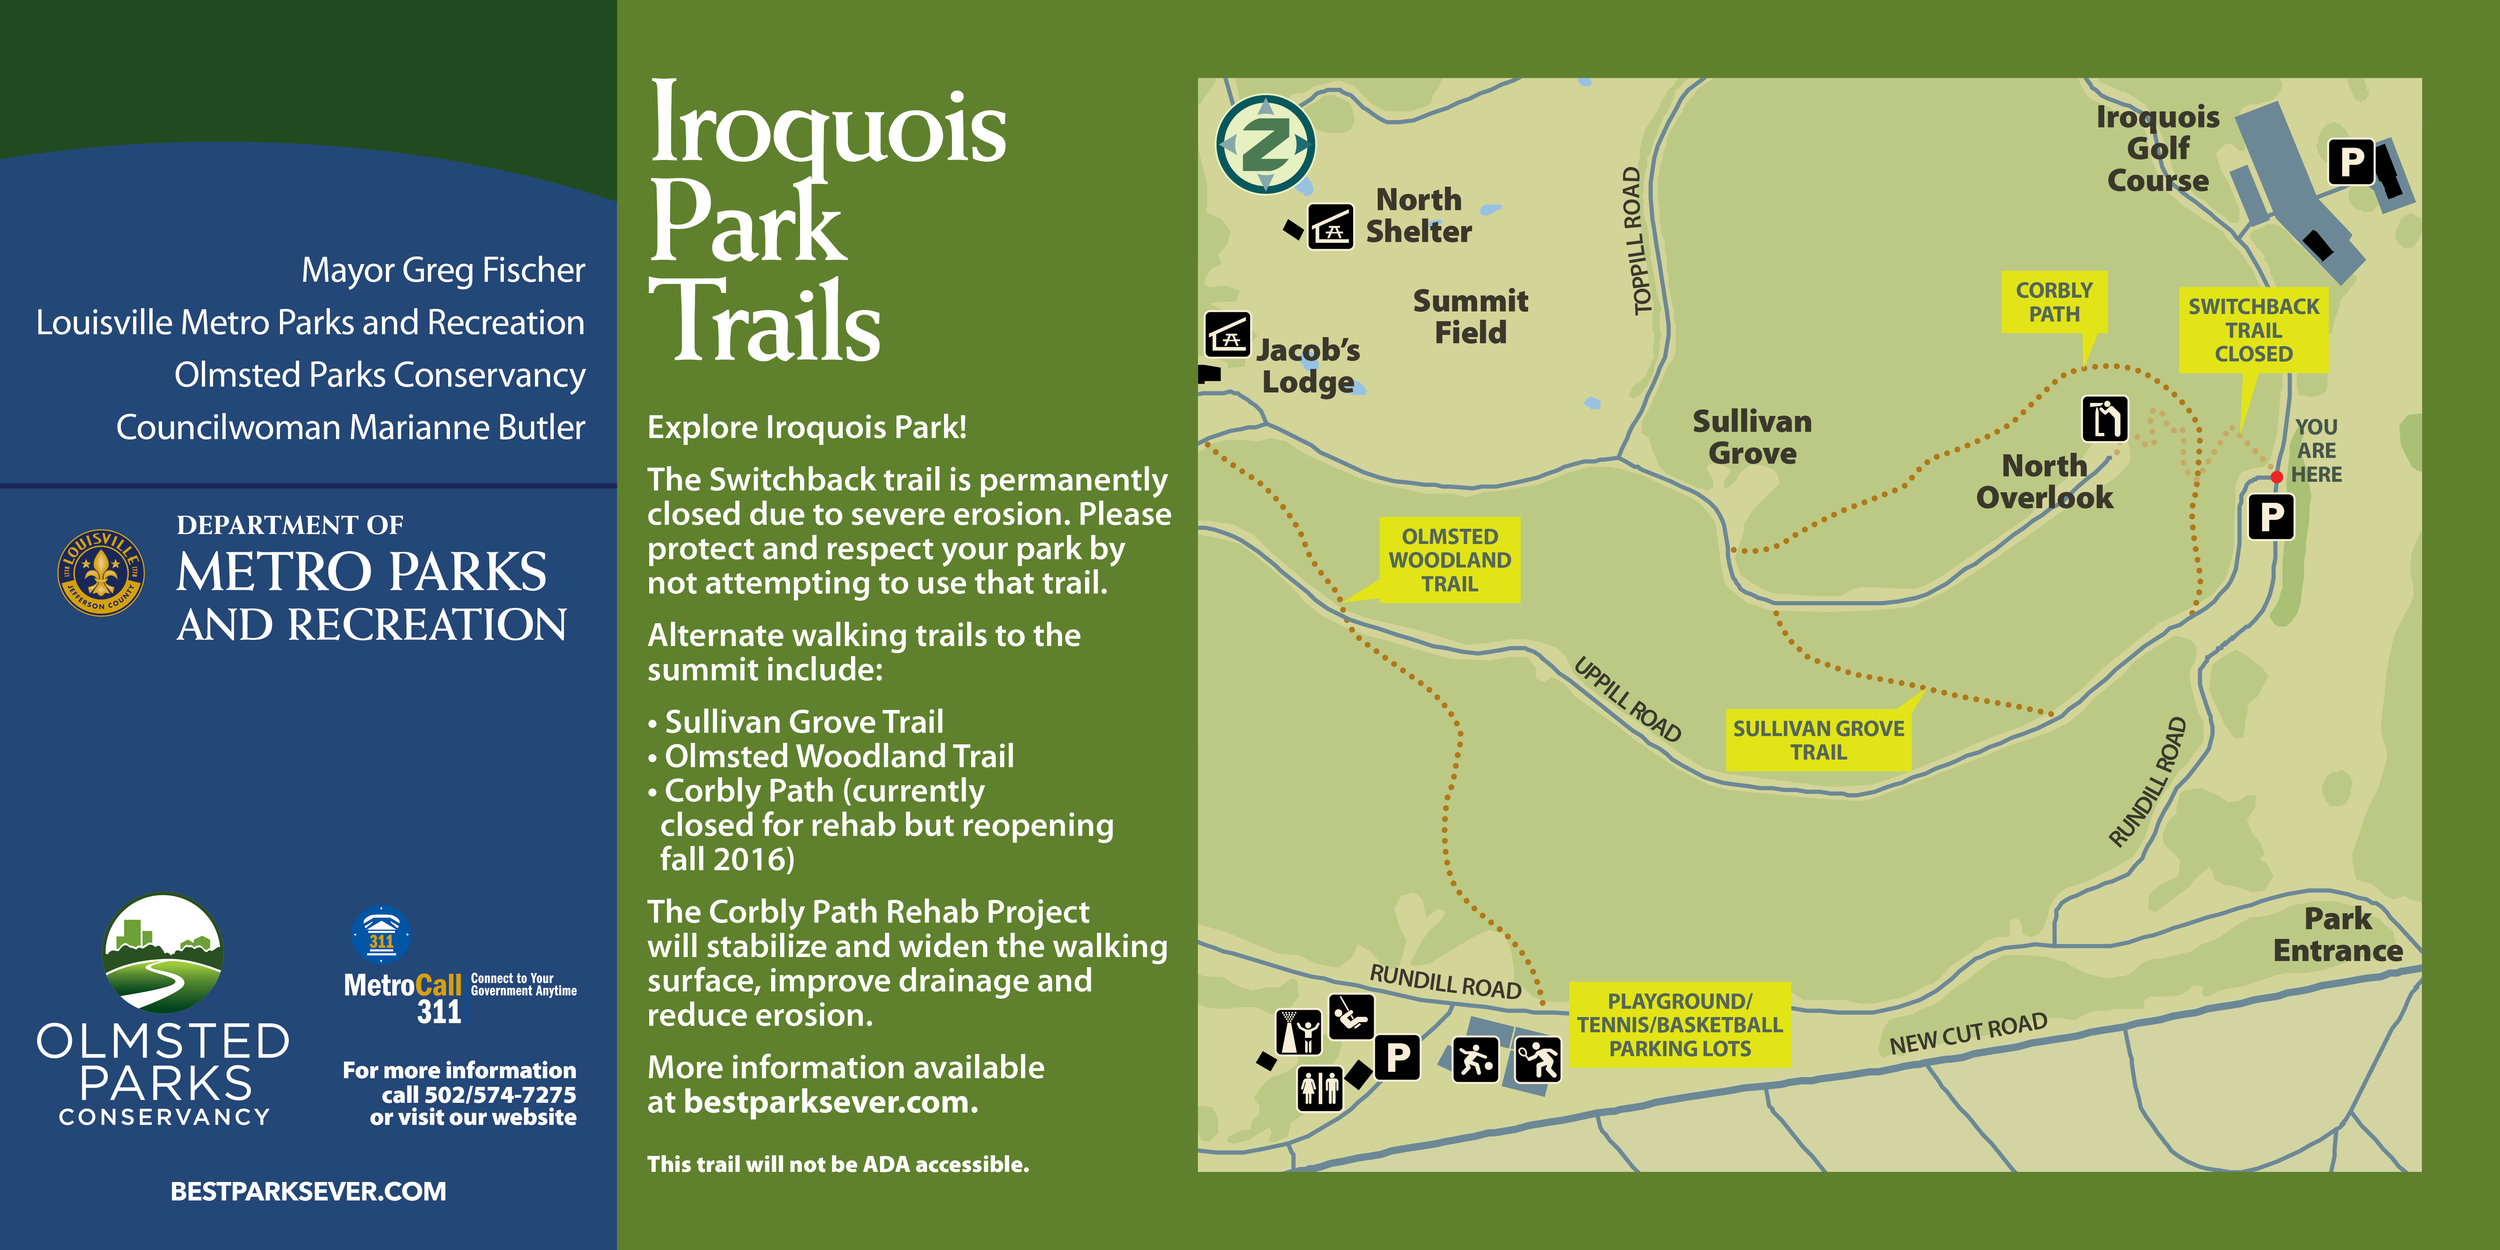 Iroquois Park Trail Map